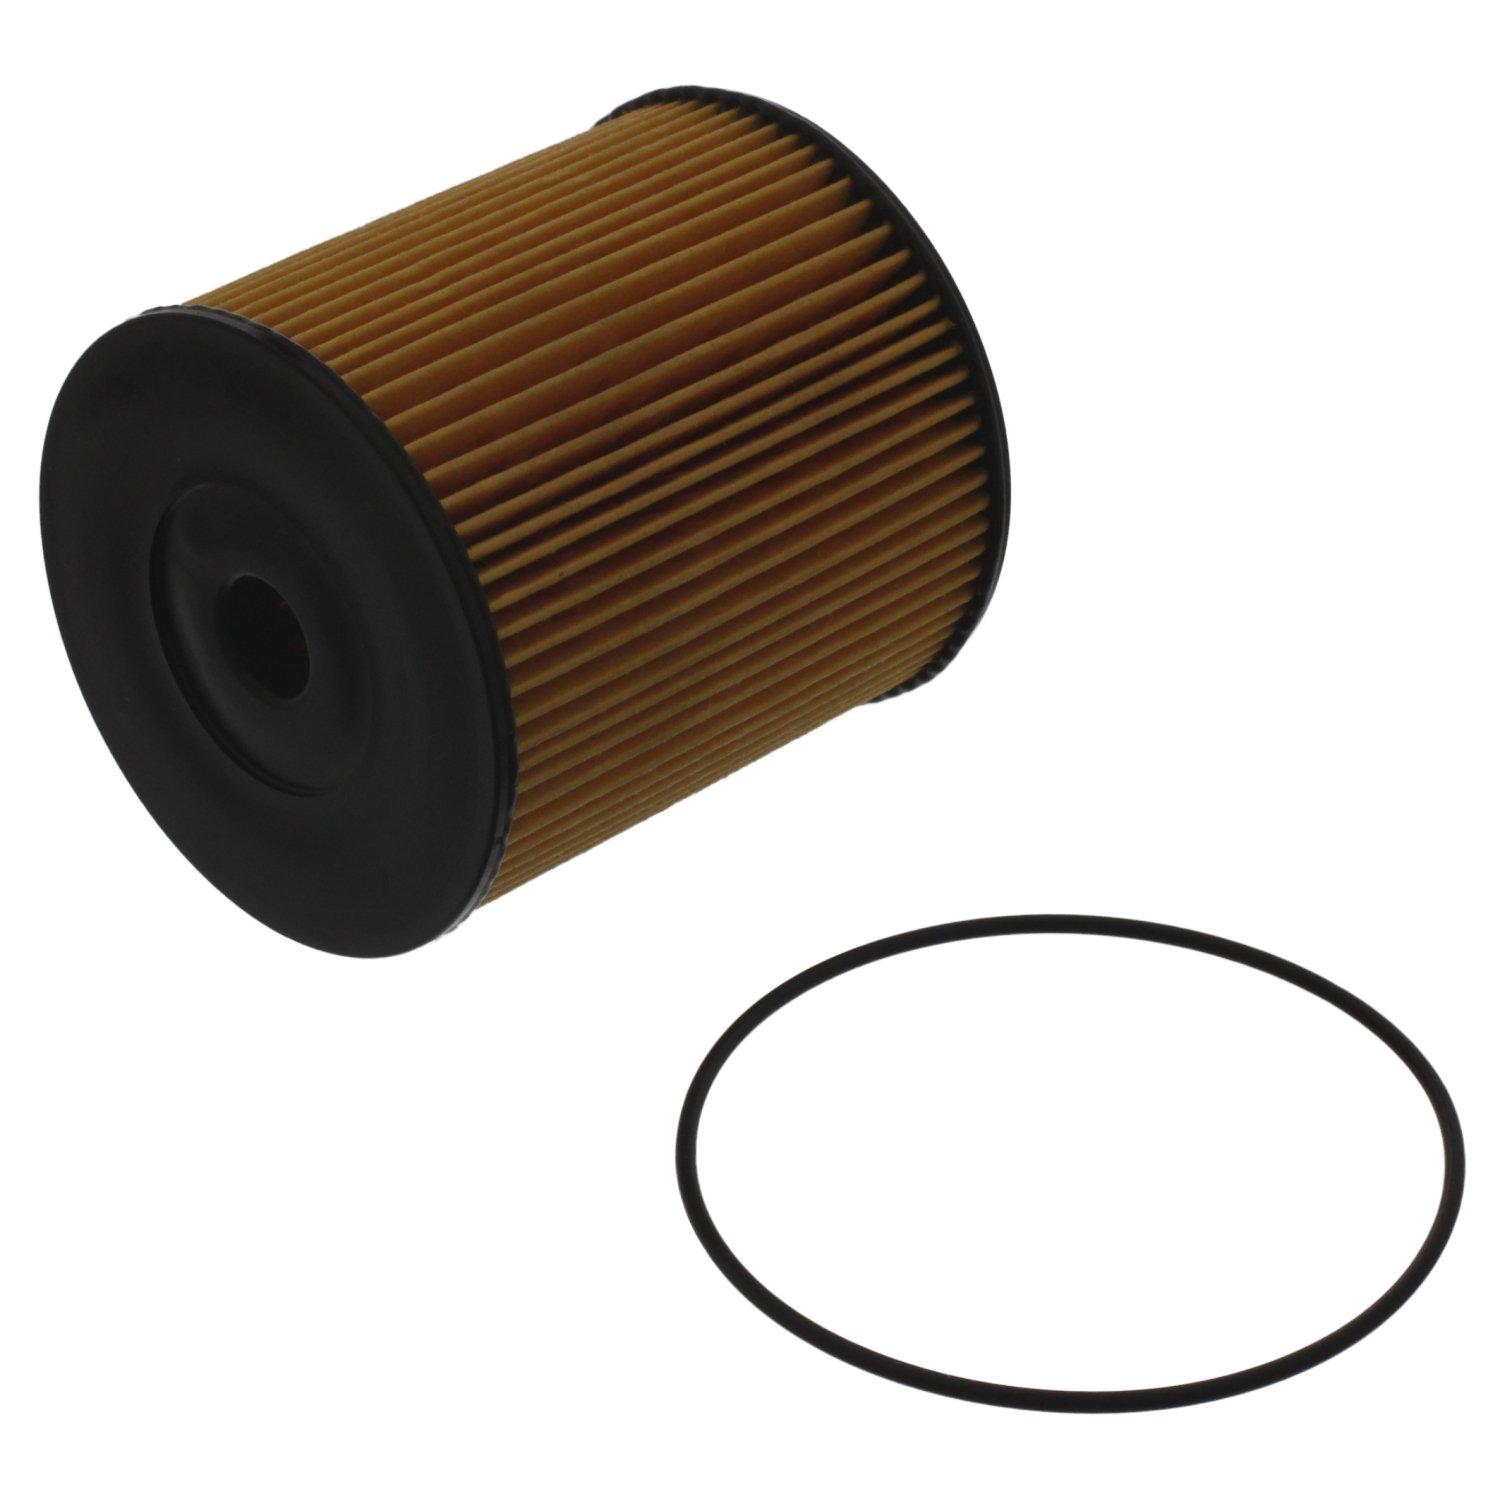 febi bilstein 39831 fuel filter with seal ring - Pack of 1